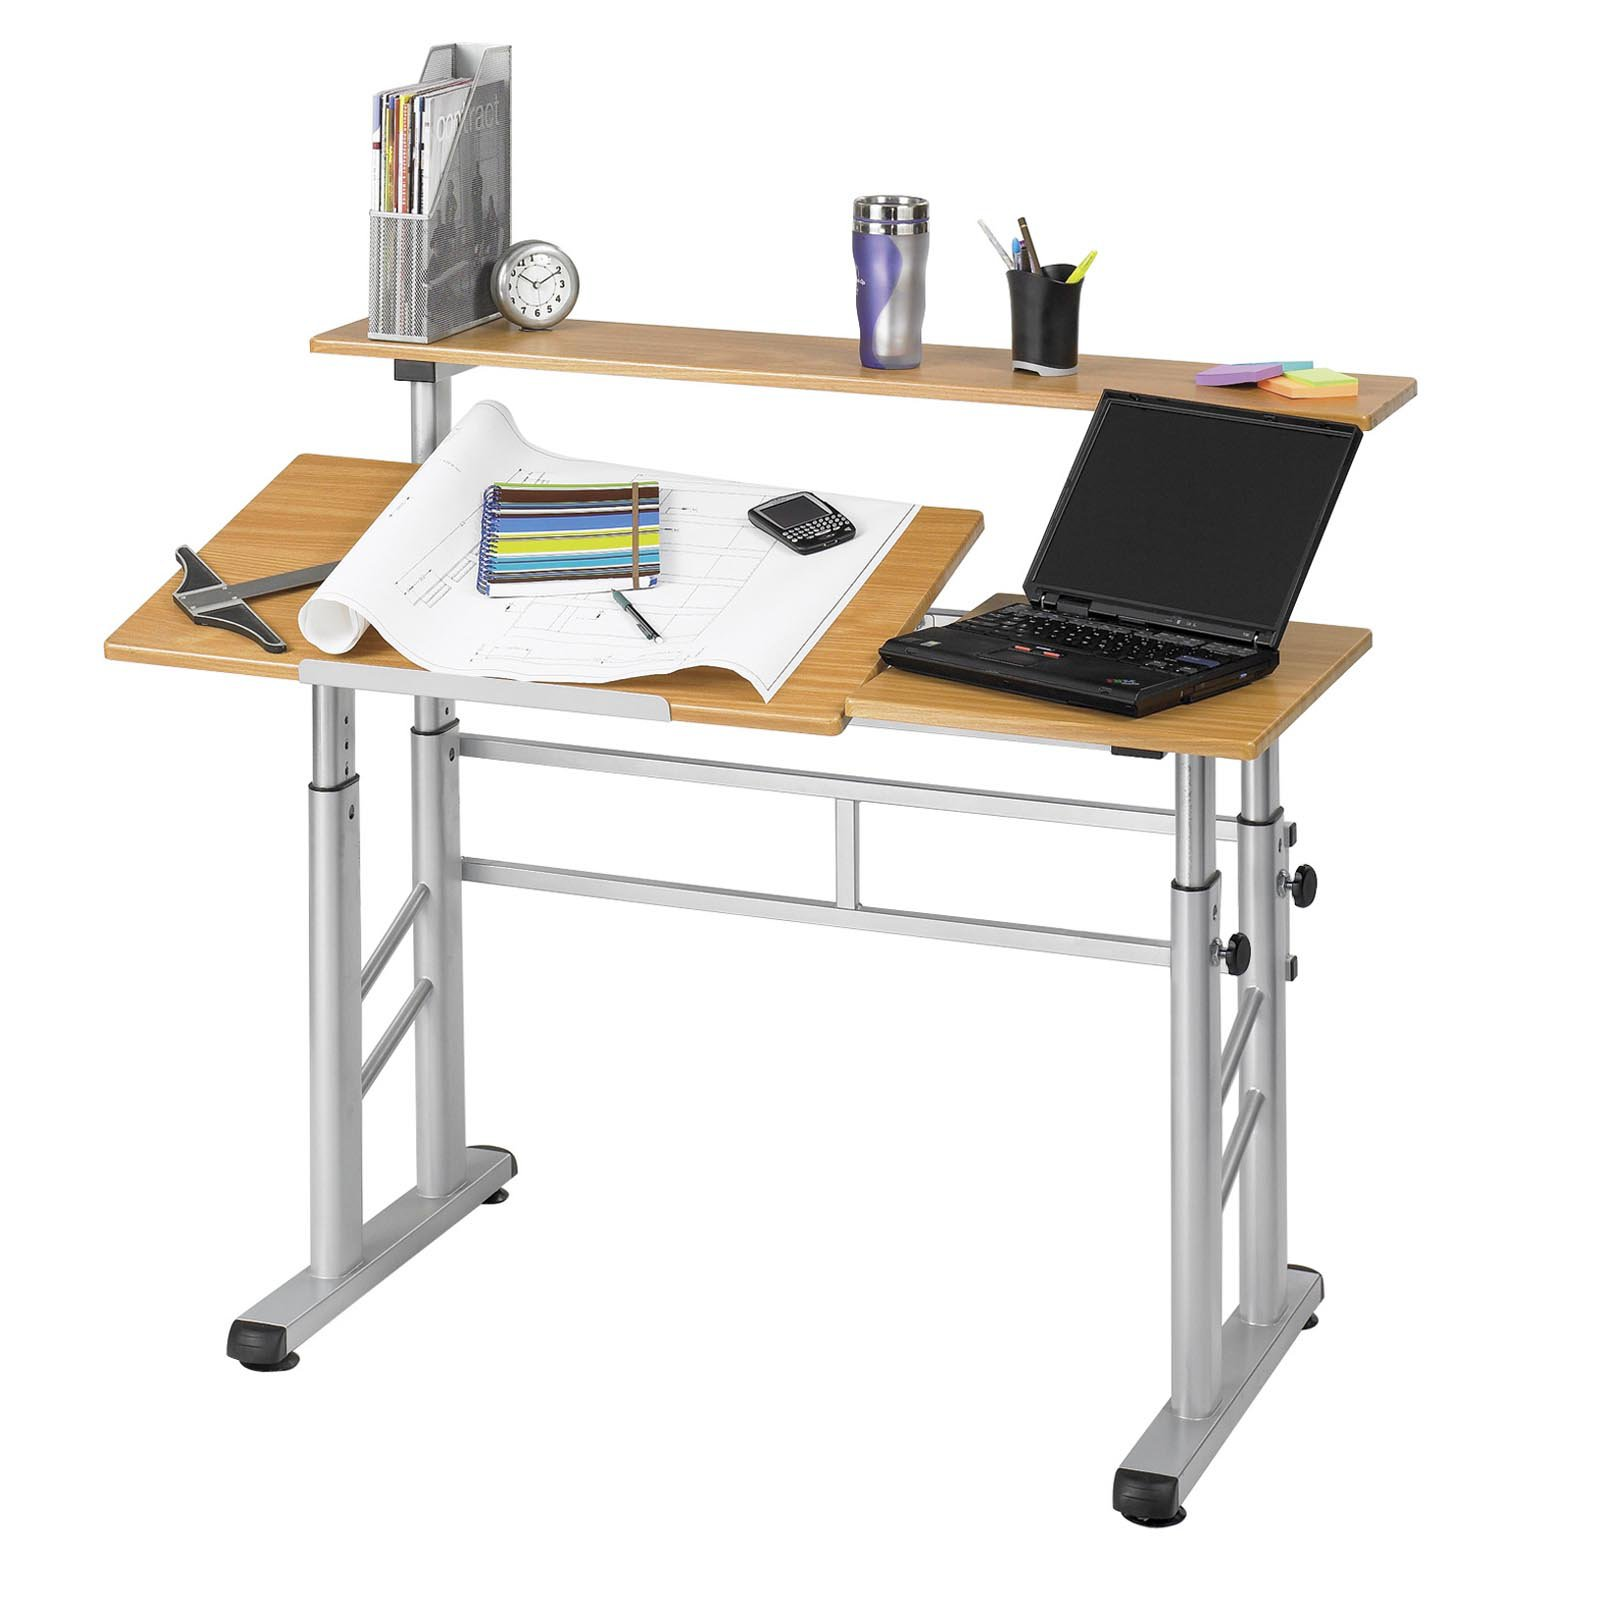 Safco Adjustable Split Level Drafting Table